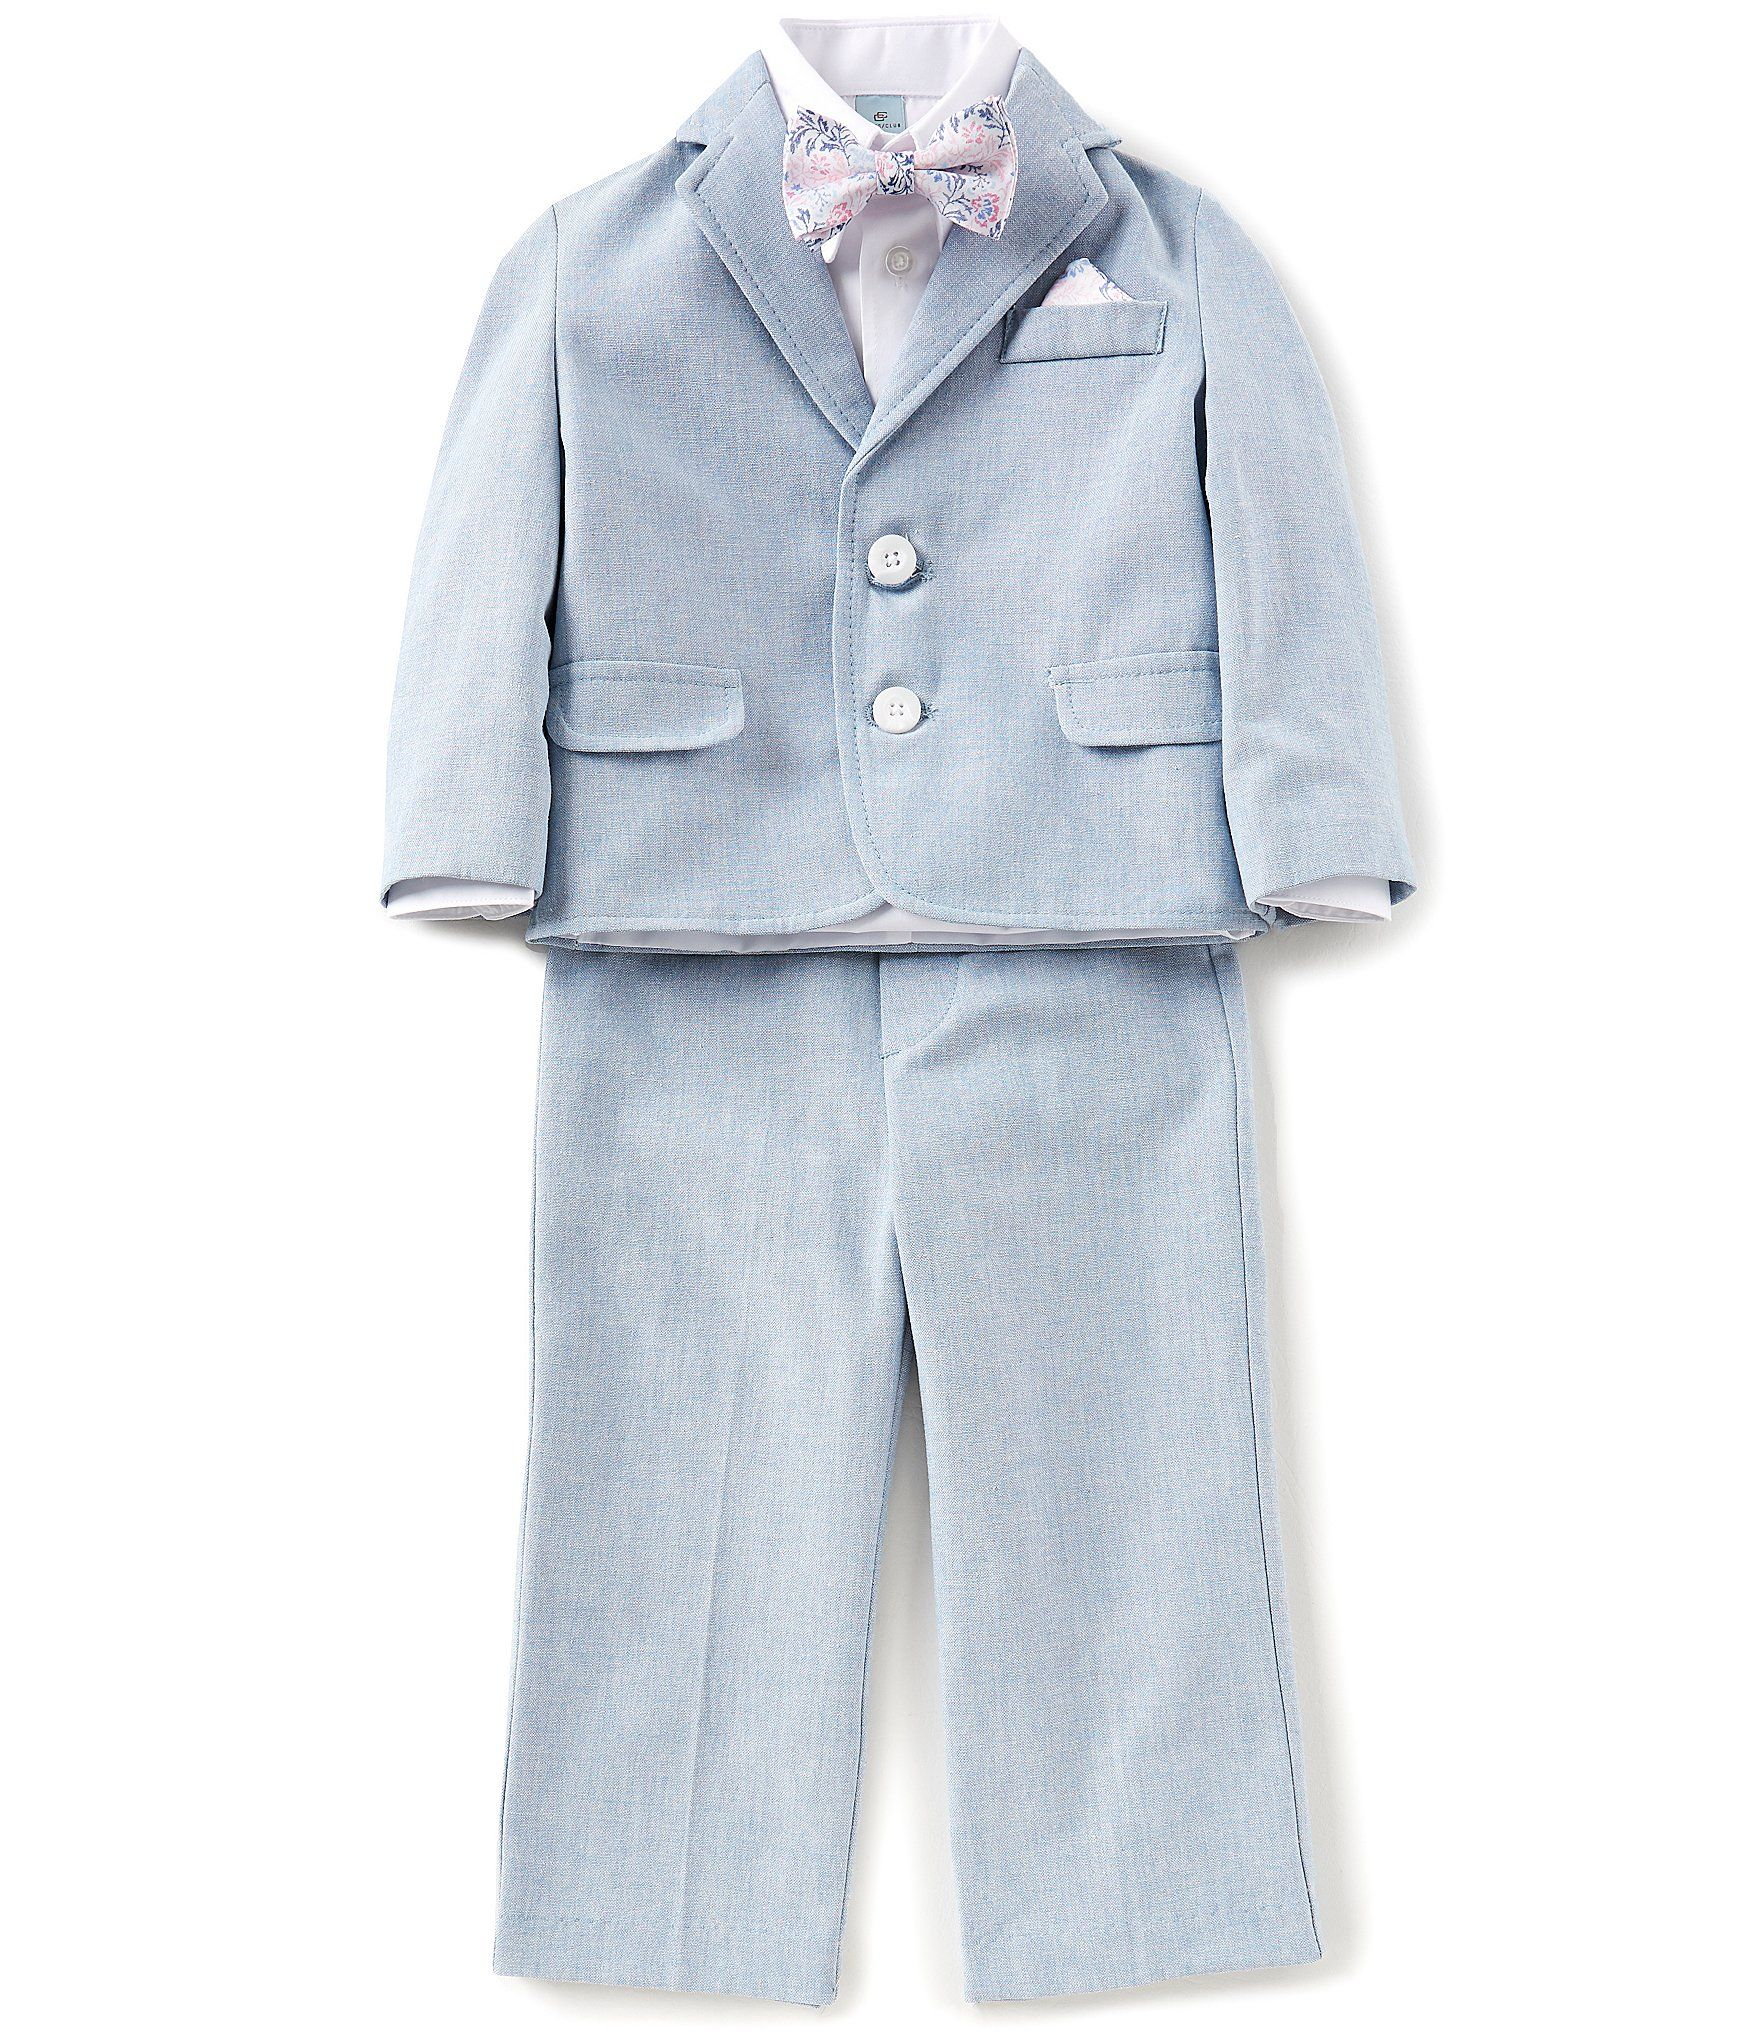 Dusty Blue ring bearer suit baptism christening outfit - Class Club ...